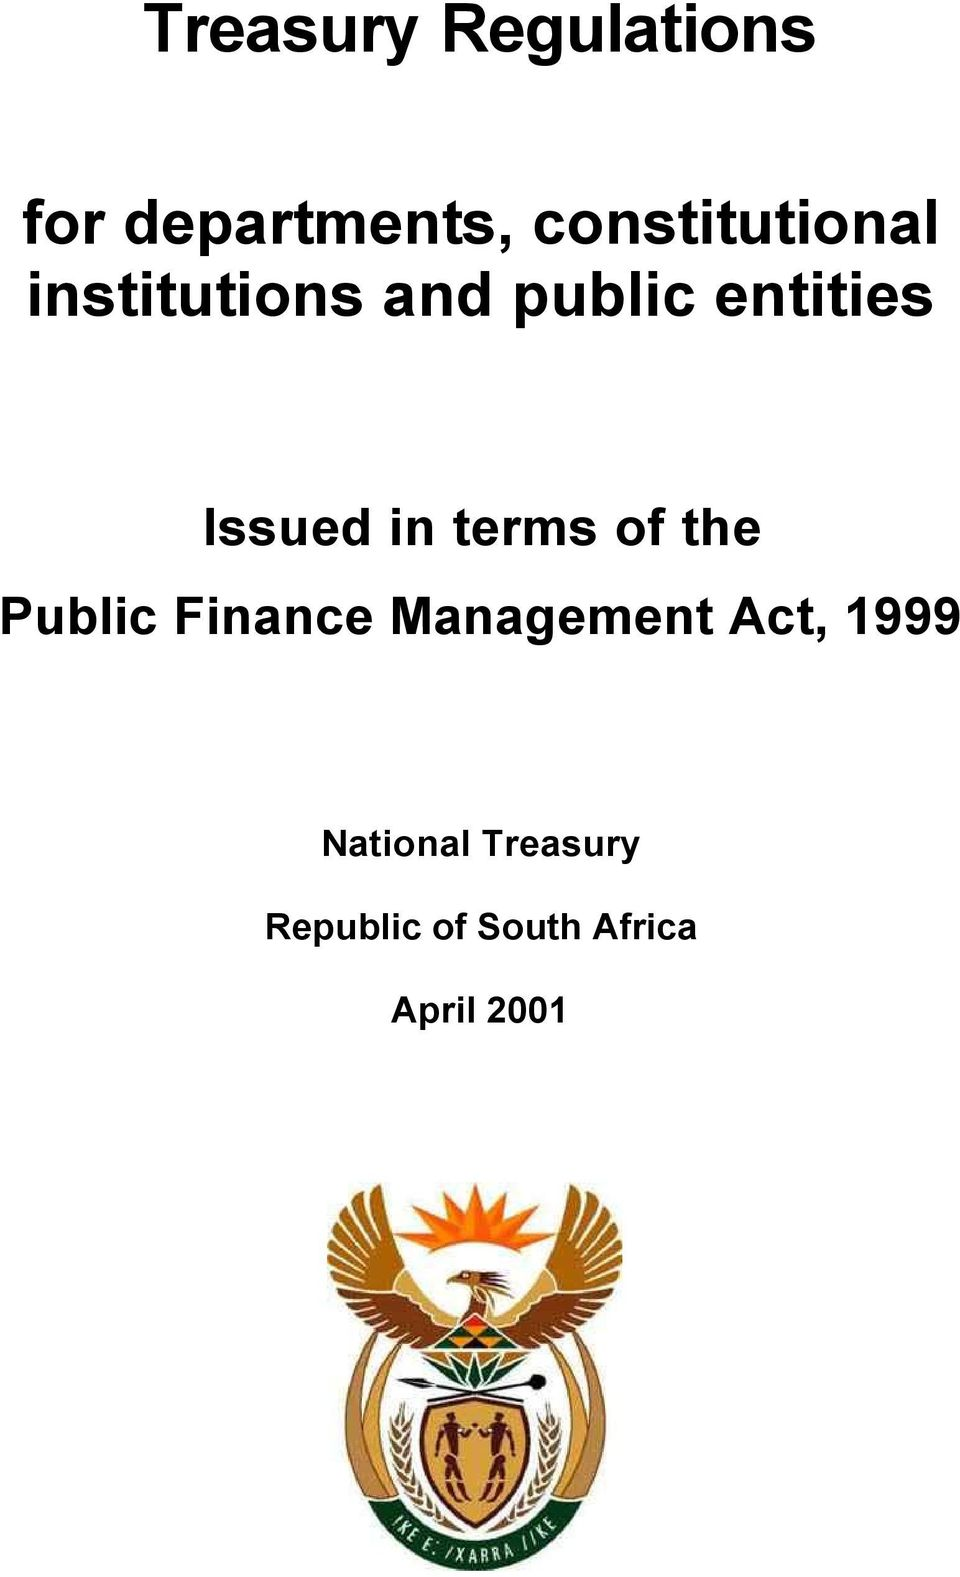 Issued in terms of the Public Finance Management